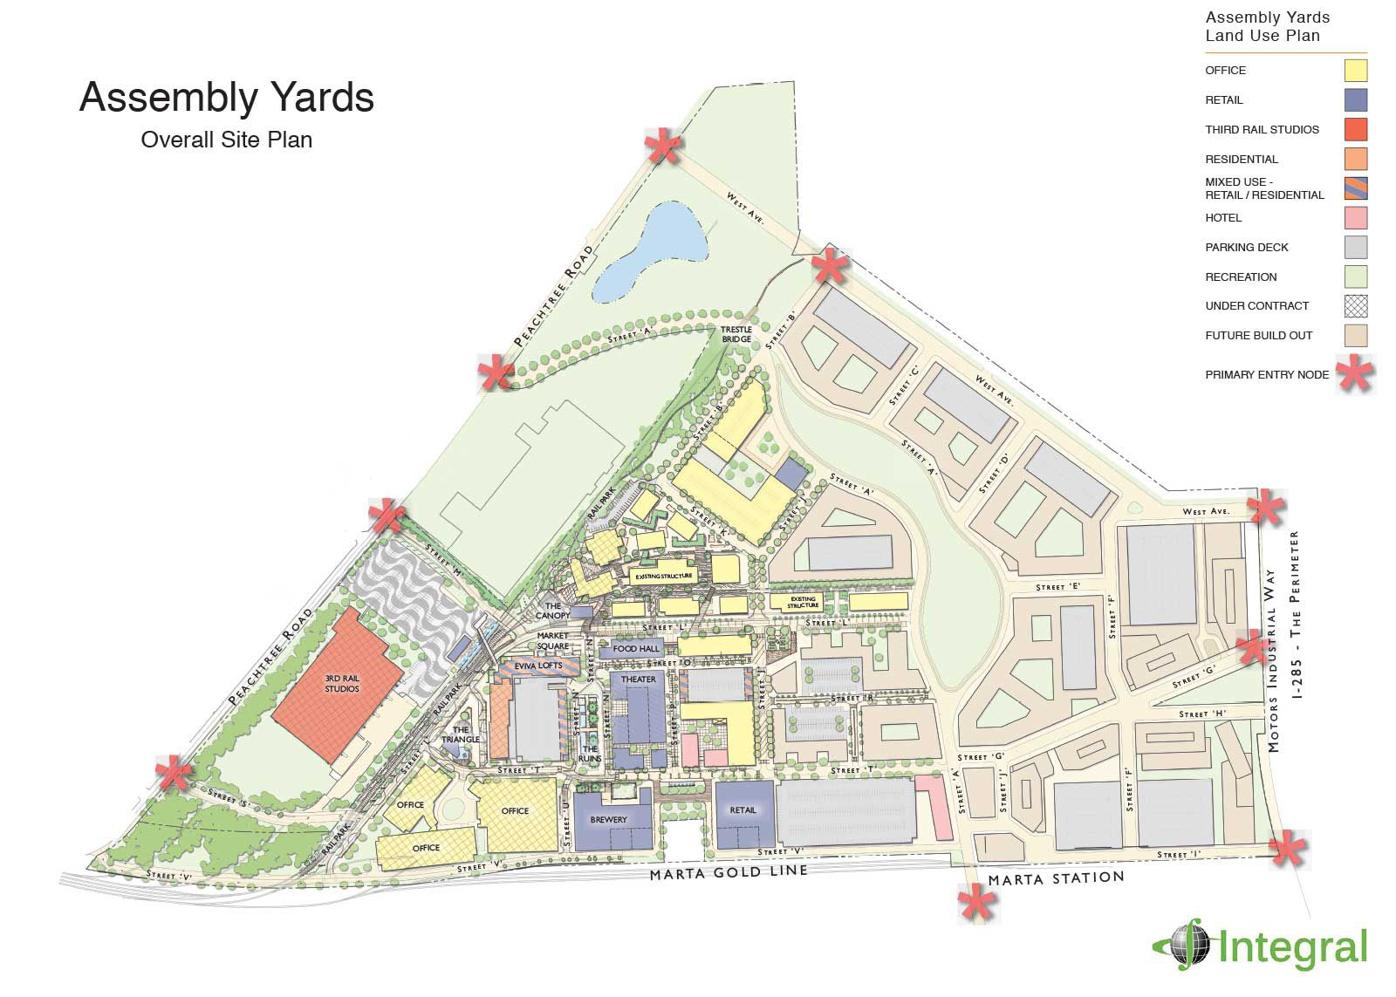 Assembly Yards master plan